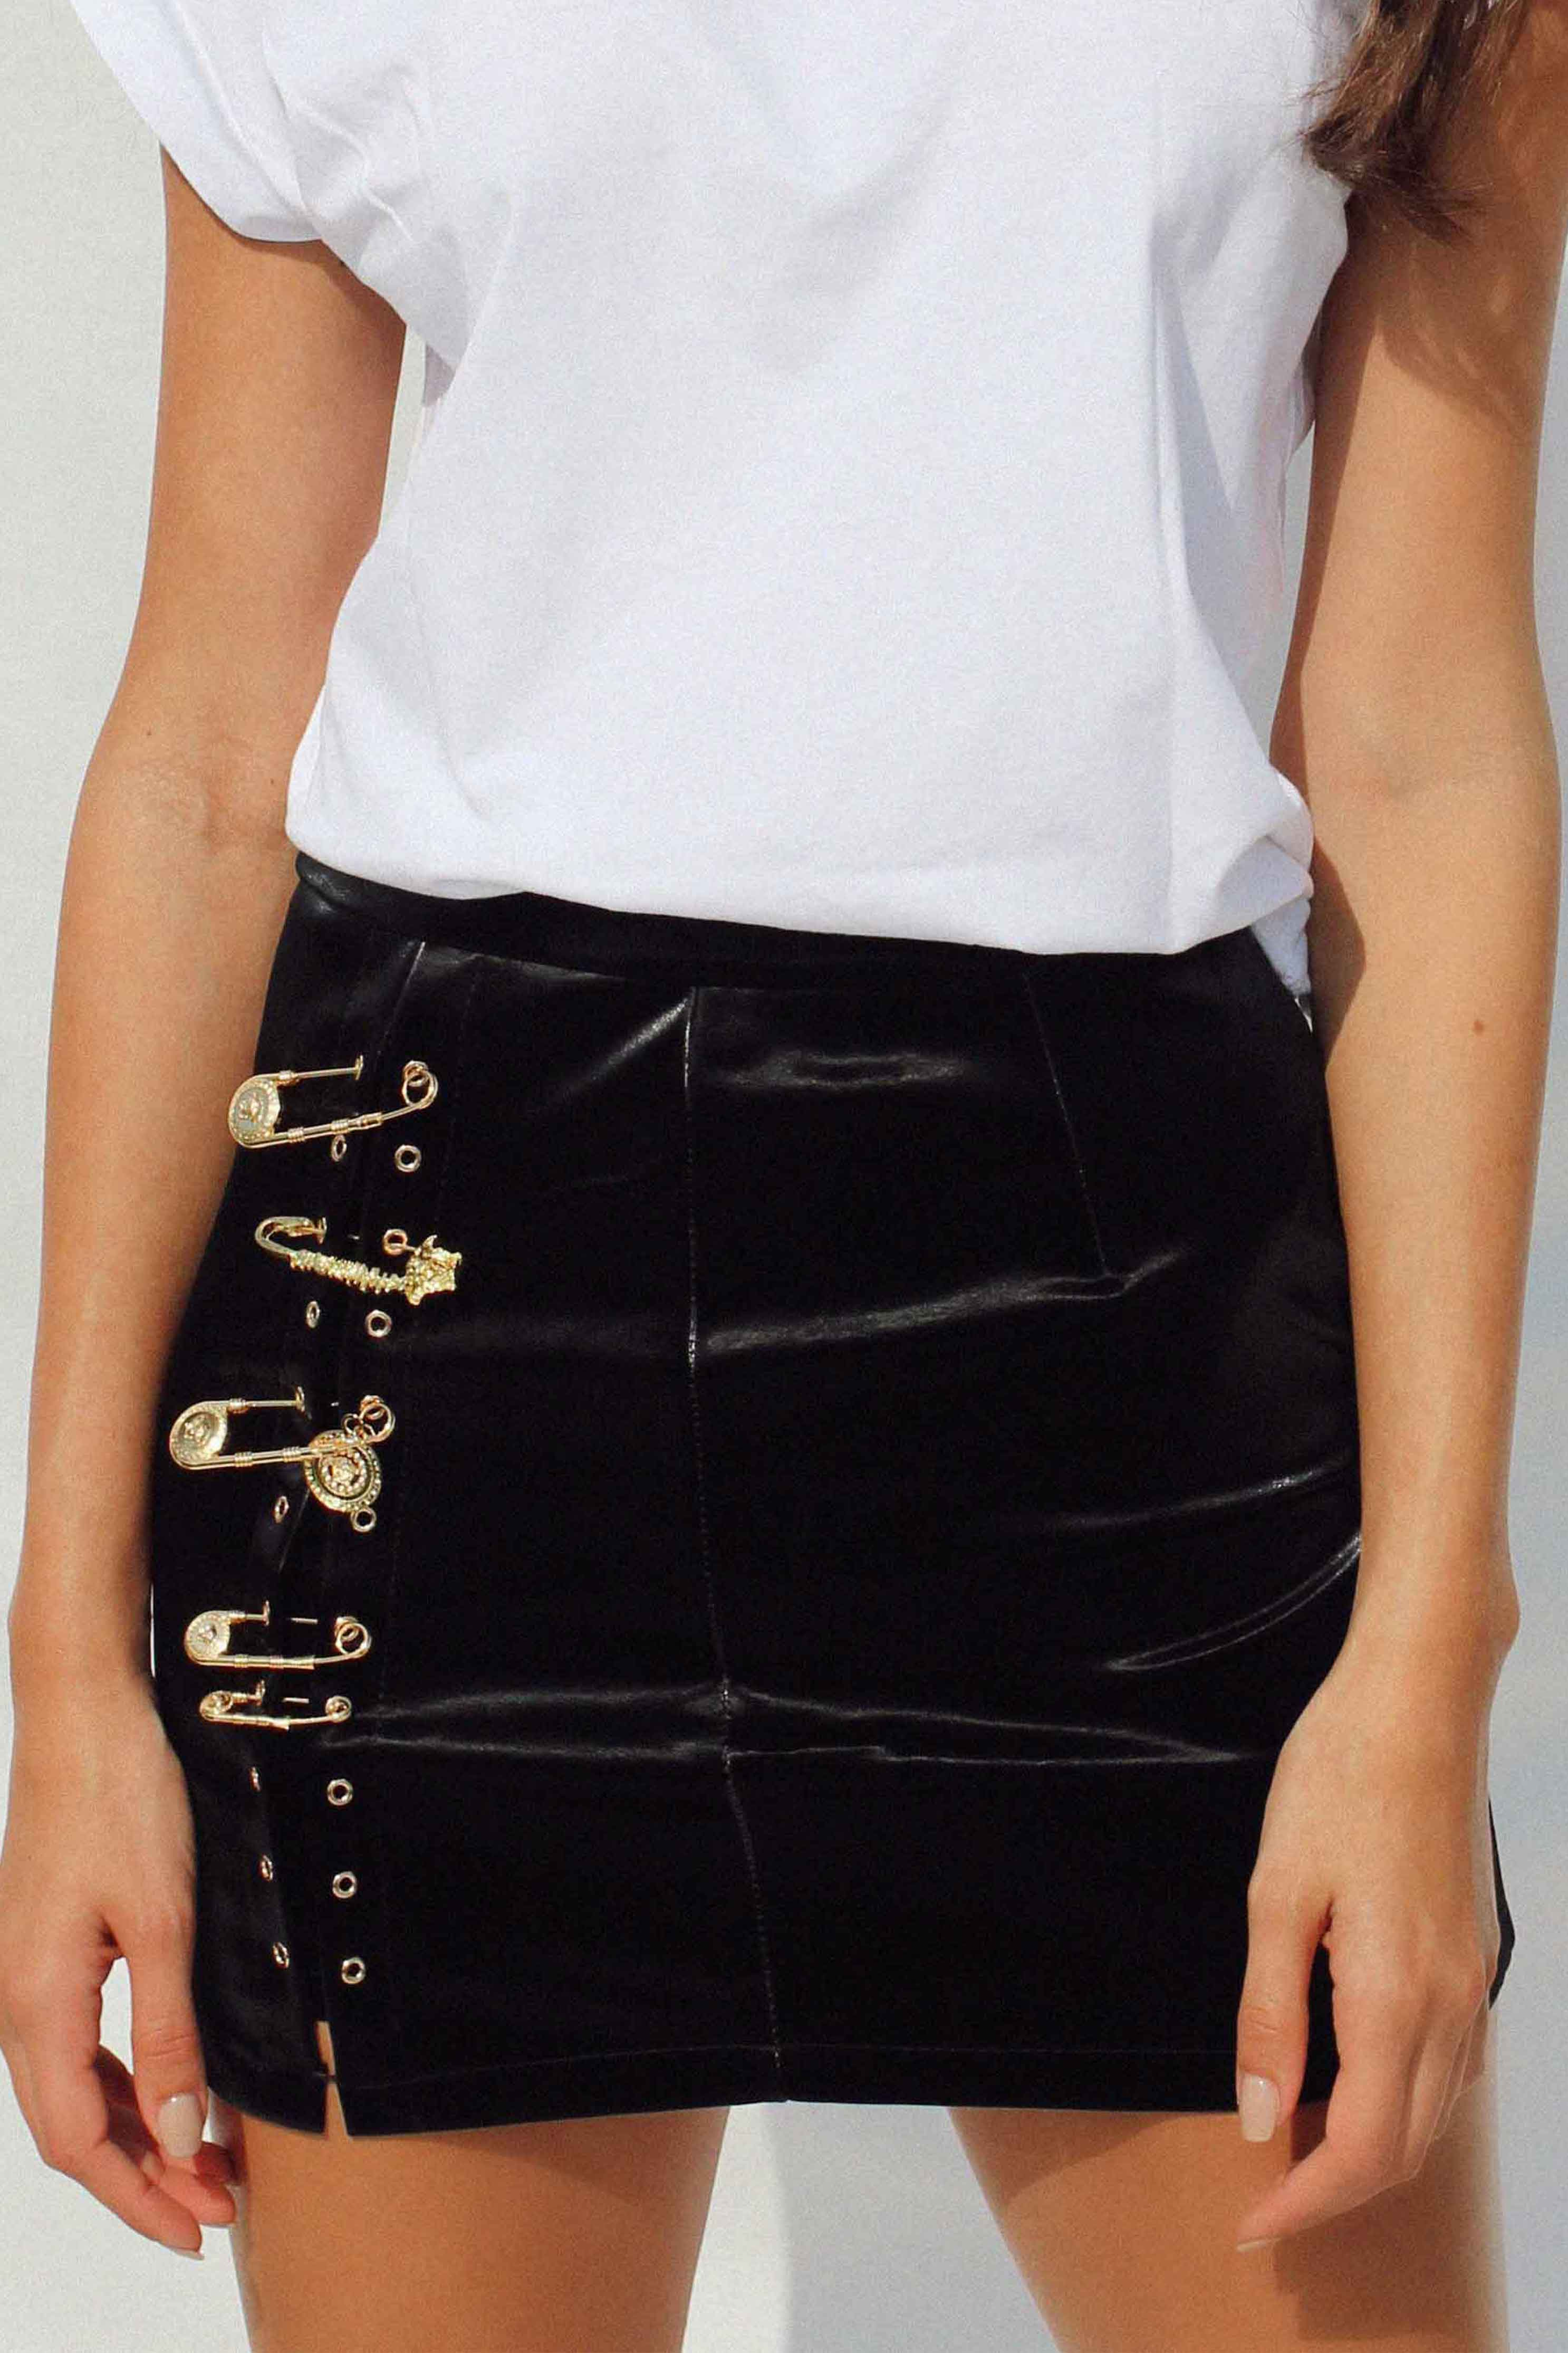 KARLA SKIRT | Women's Online Shopping | CHICLEFRIQUE